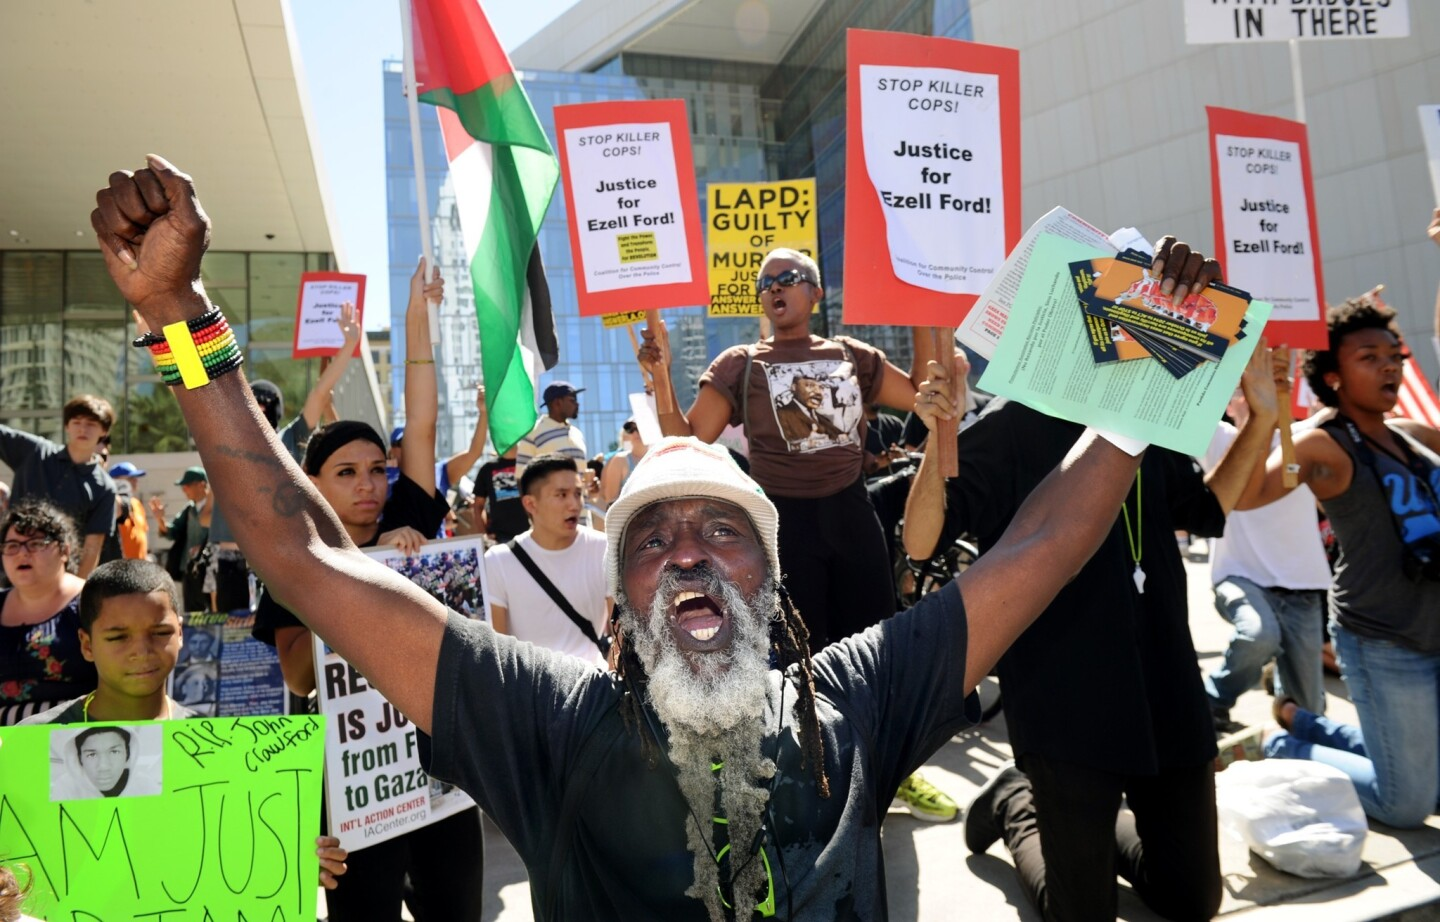 Kelly Kunta leads a rally outside Los Angeles Police Department headquarters in downtown L.A. on Sunday to protest police killings of young black men around the country.